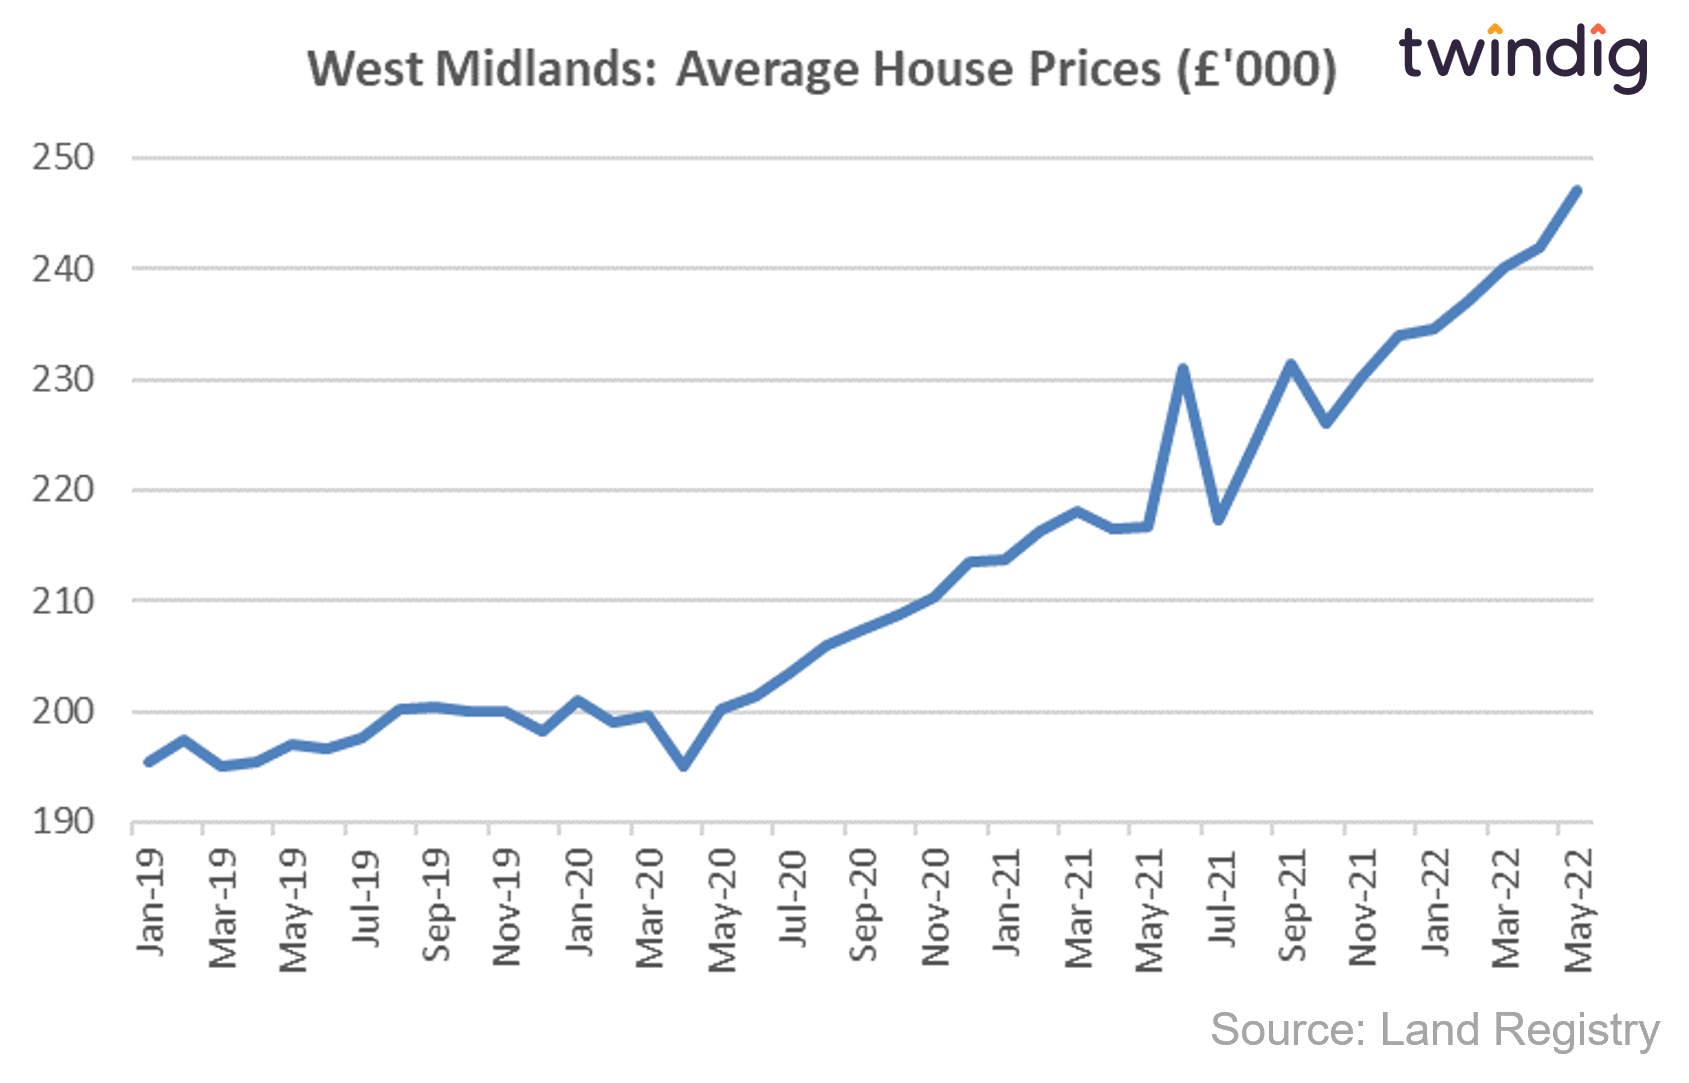 House price graph chart showing average house prices in the West Midlands